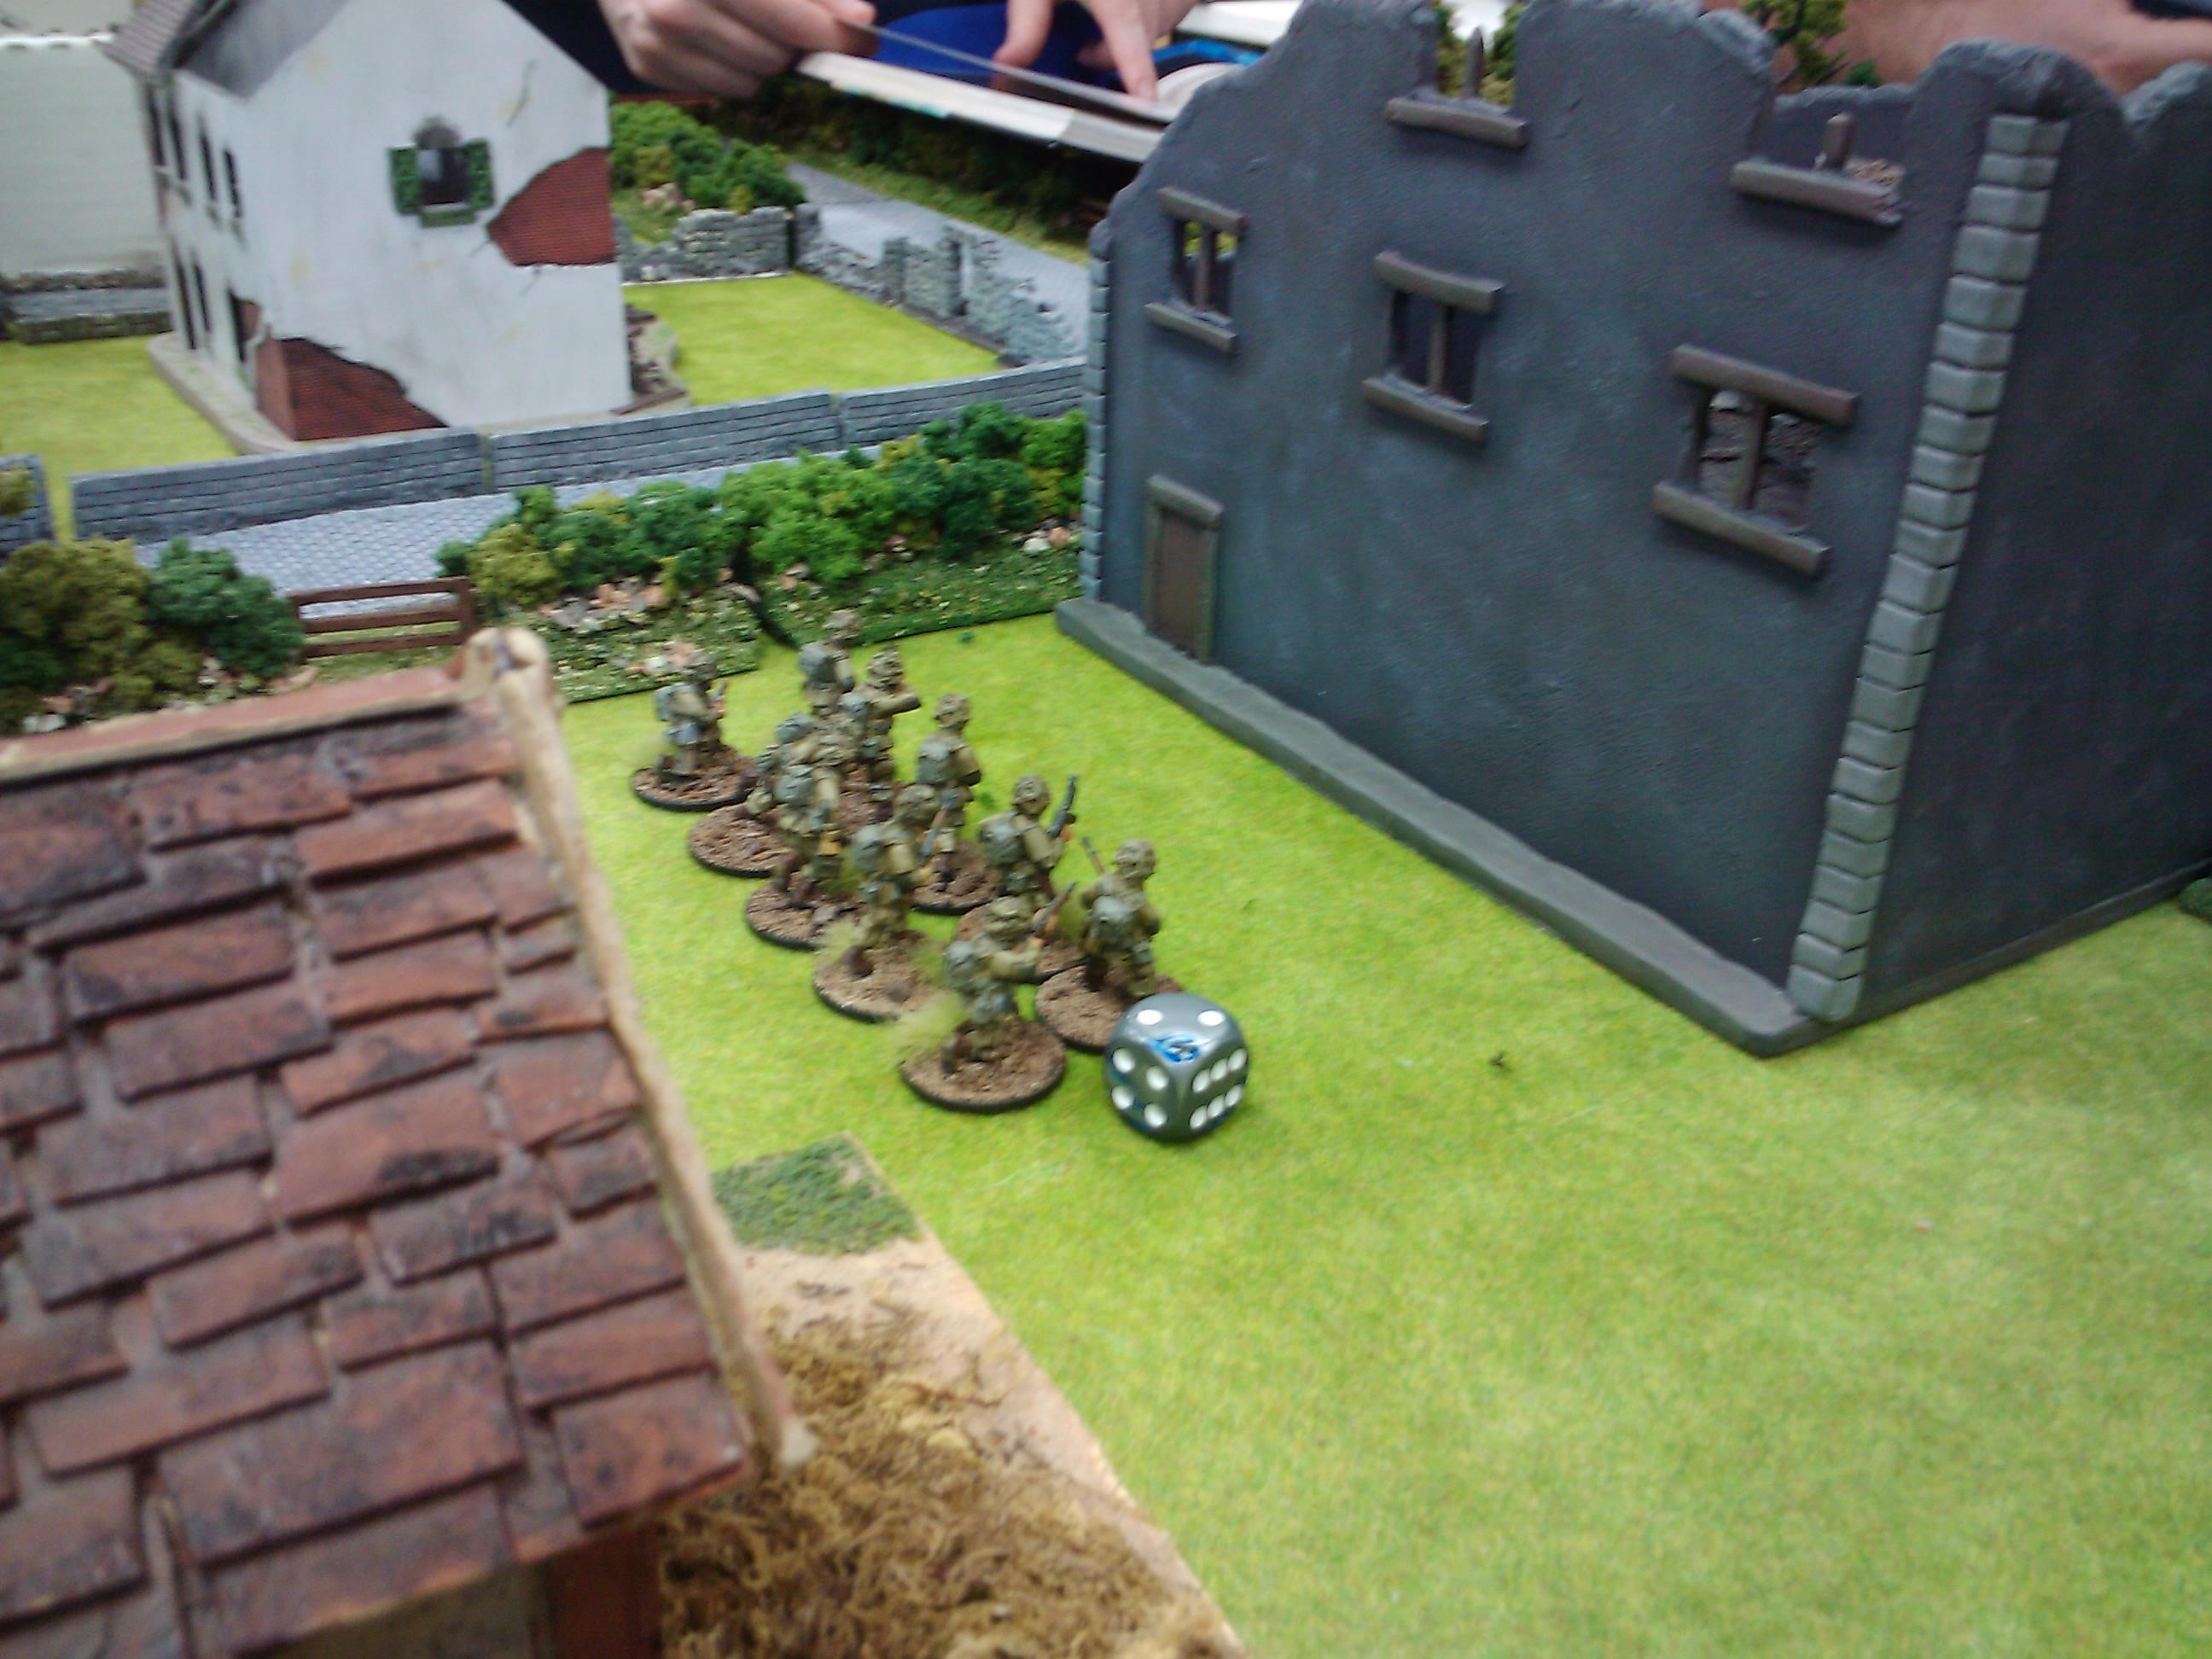 28mm, Army, Bolt Action, Demo, Game, Germans, Historical, Russians, Terrain, Us Army, Warlord Games, World War 2